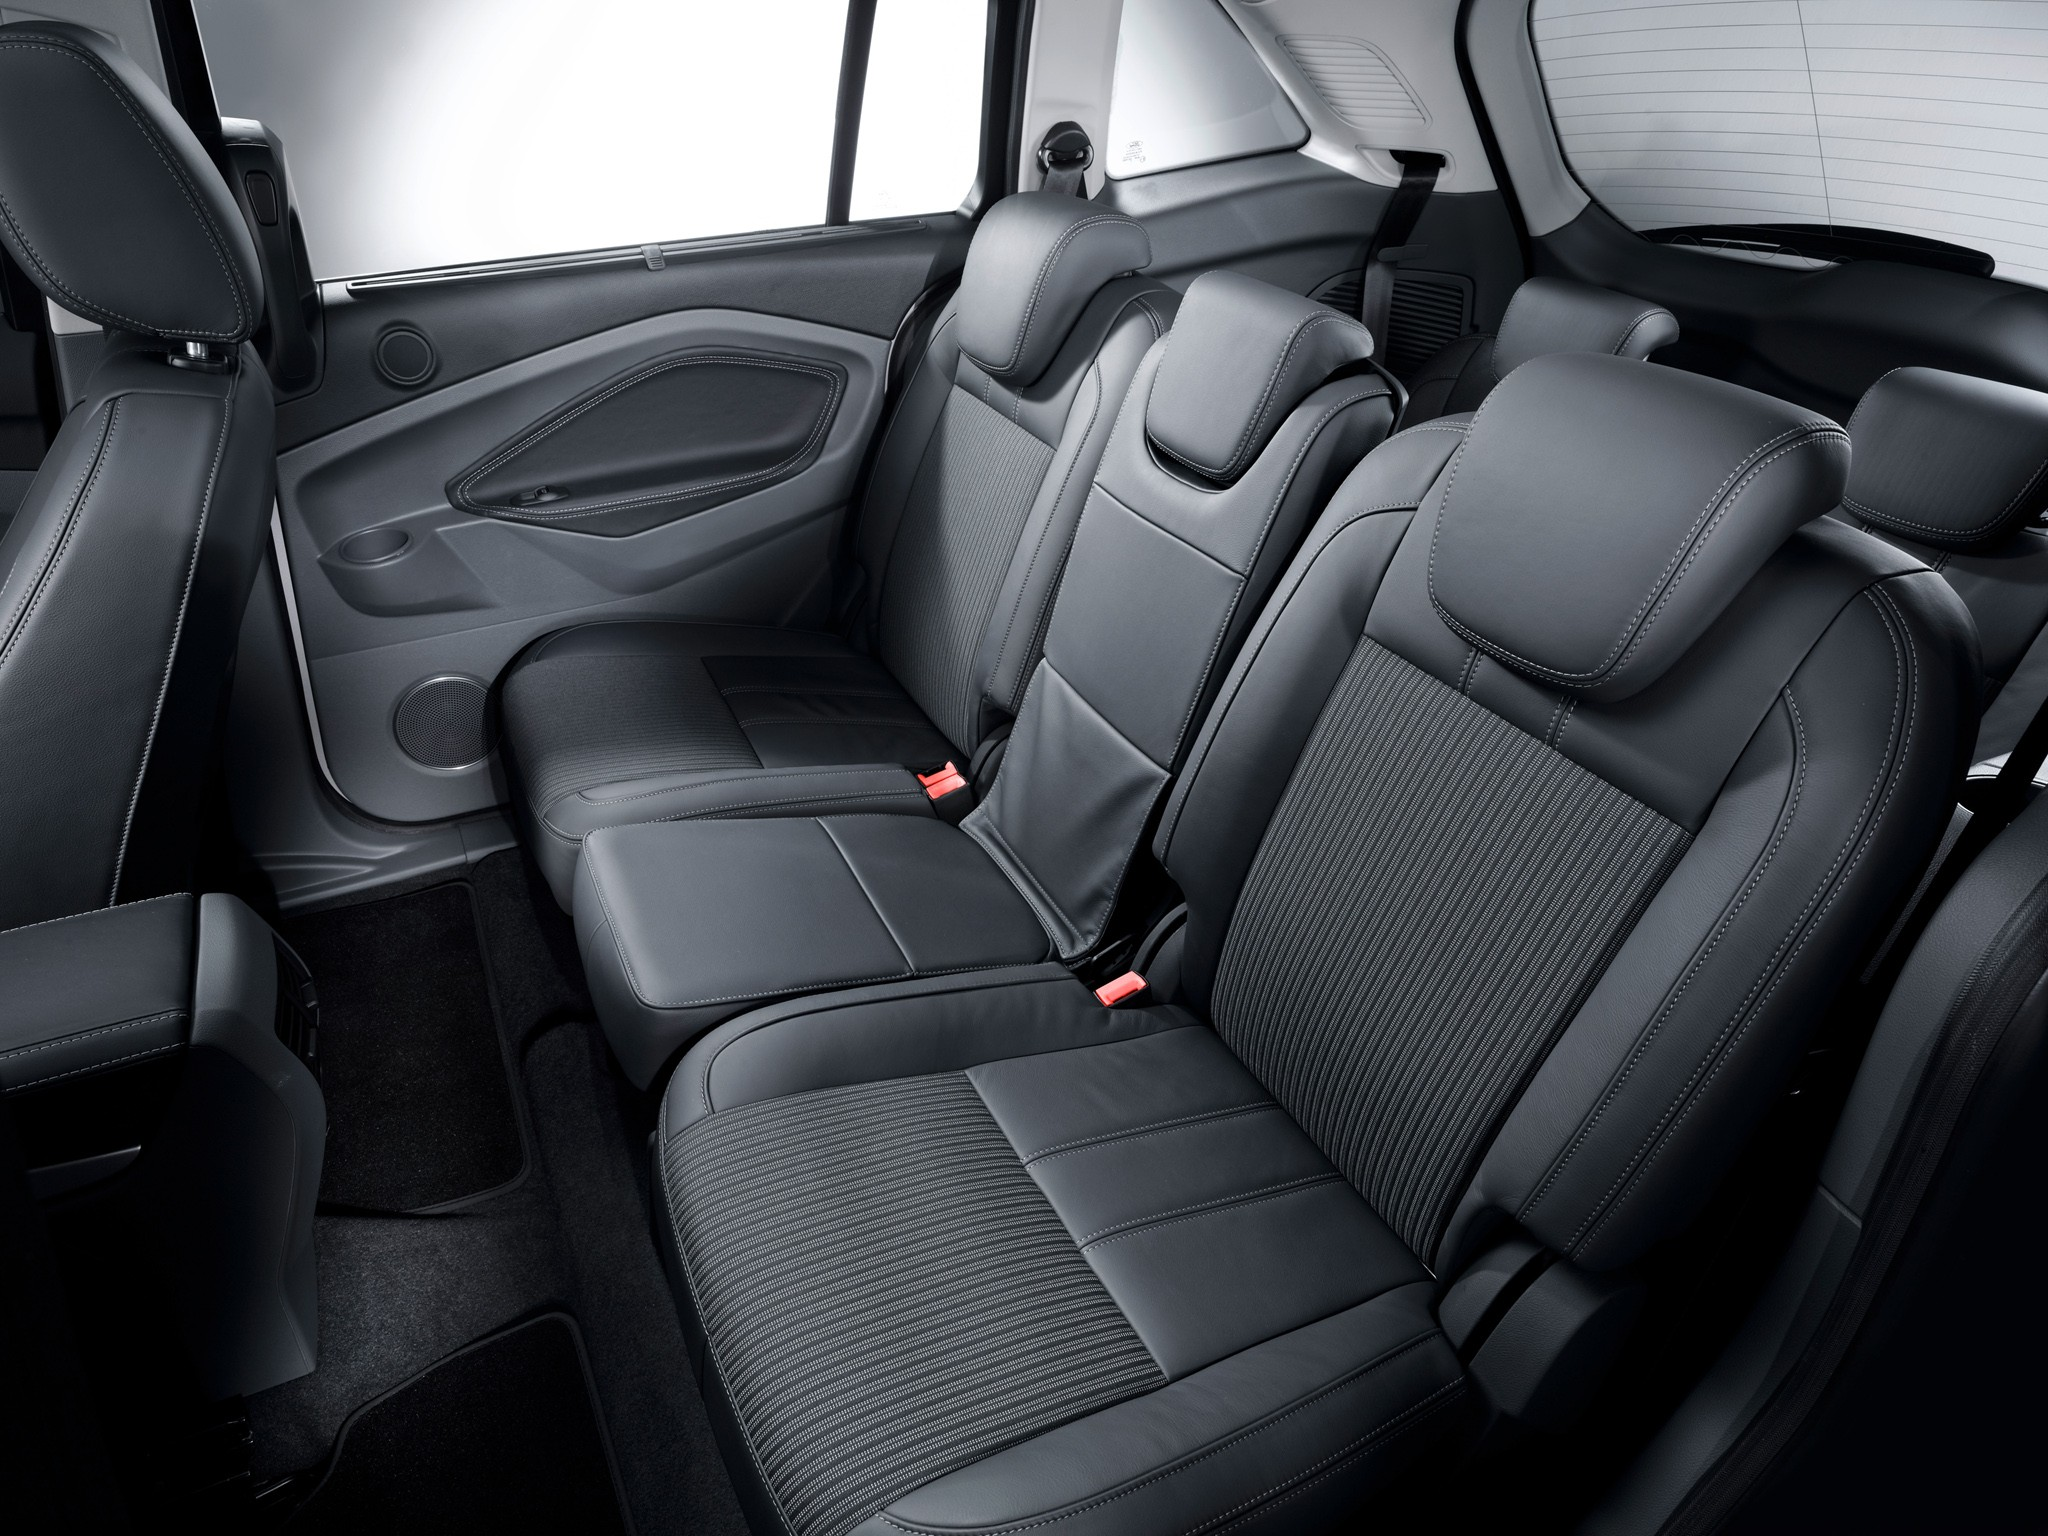 Dimension Grand C Max Ford Grand C Max Interior Dimensions Indiepedia Org